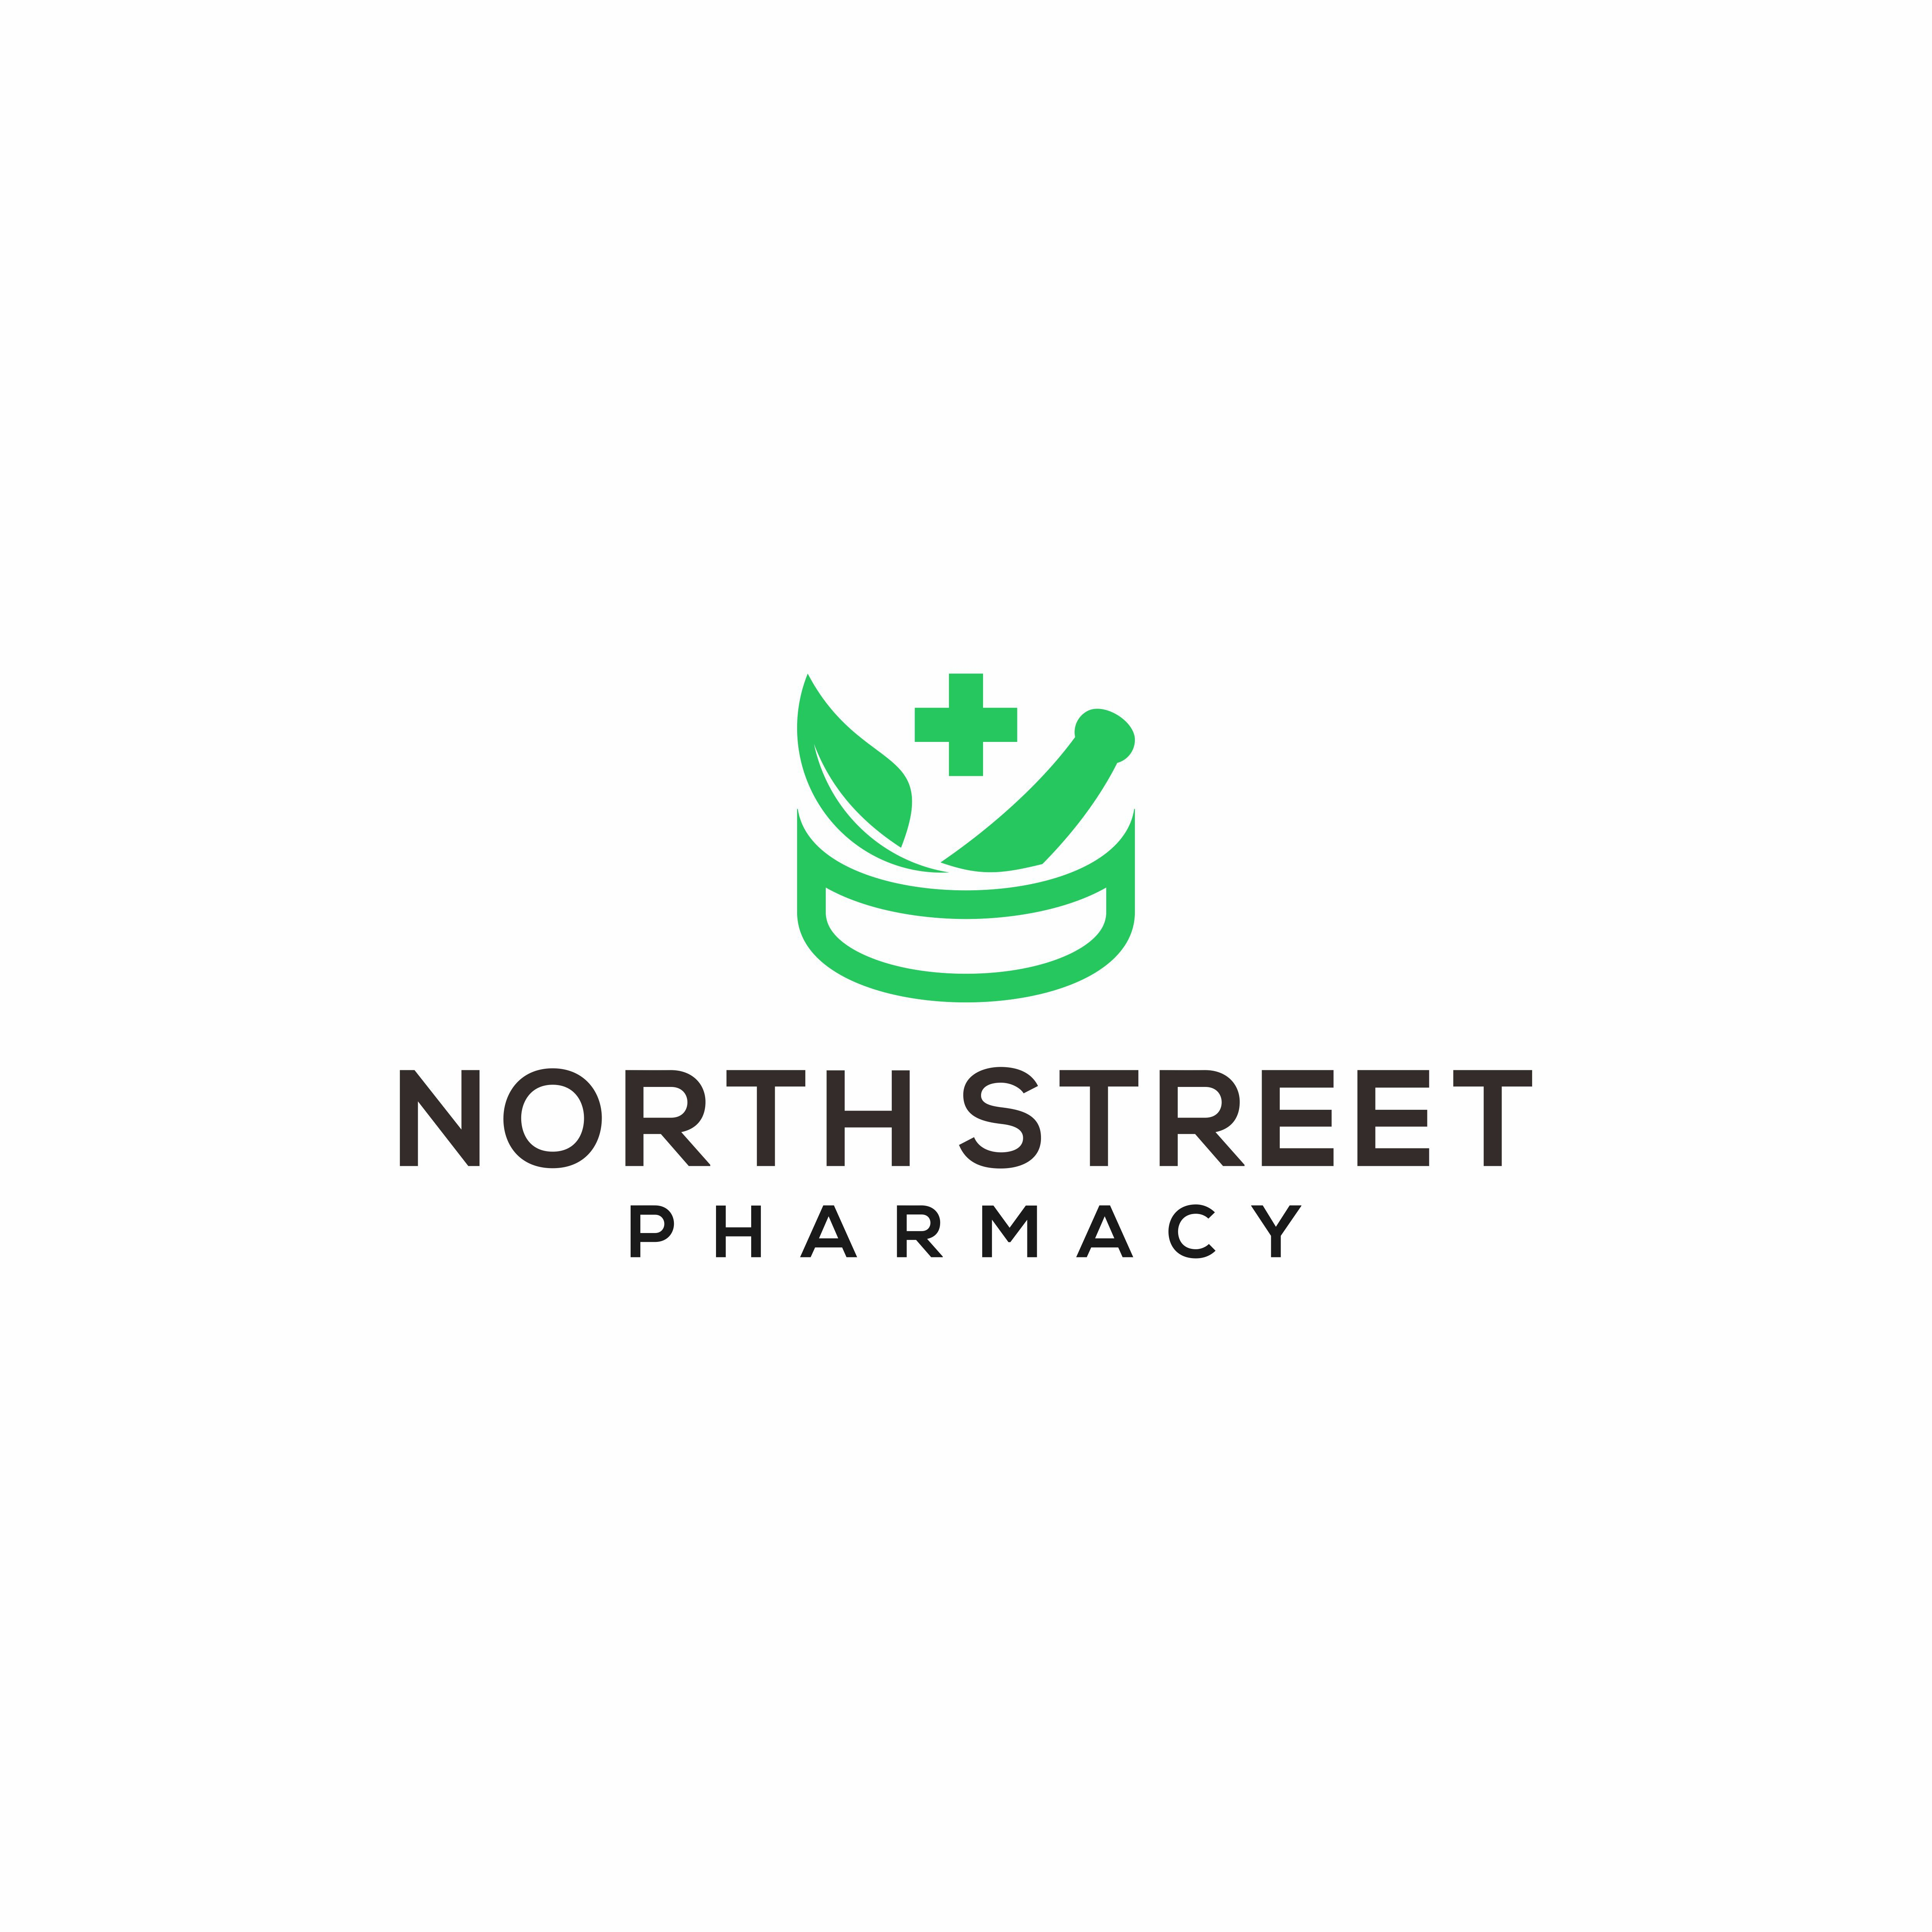 North Street Pharmacy